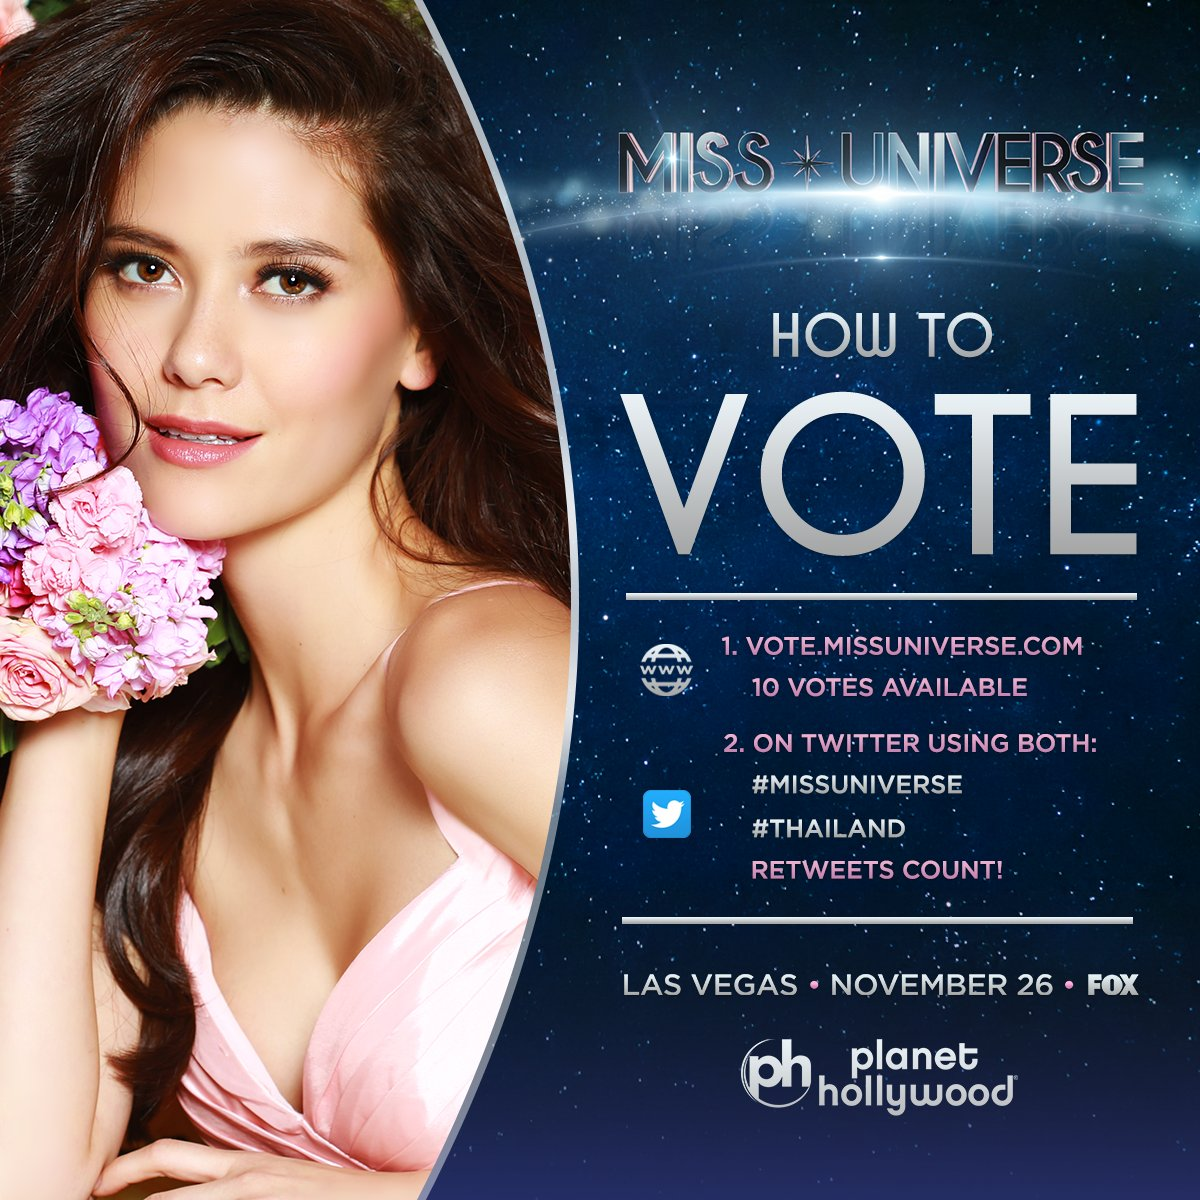 Voting for #MissUniverse is officially OPEN. RT to vote for Miss Universe #Thailand!   Watch her LIVE: Sunday Nov. 26 at 7PM on @FOXTV.